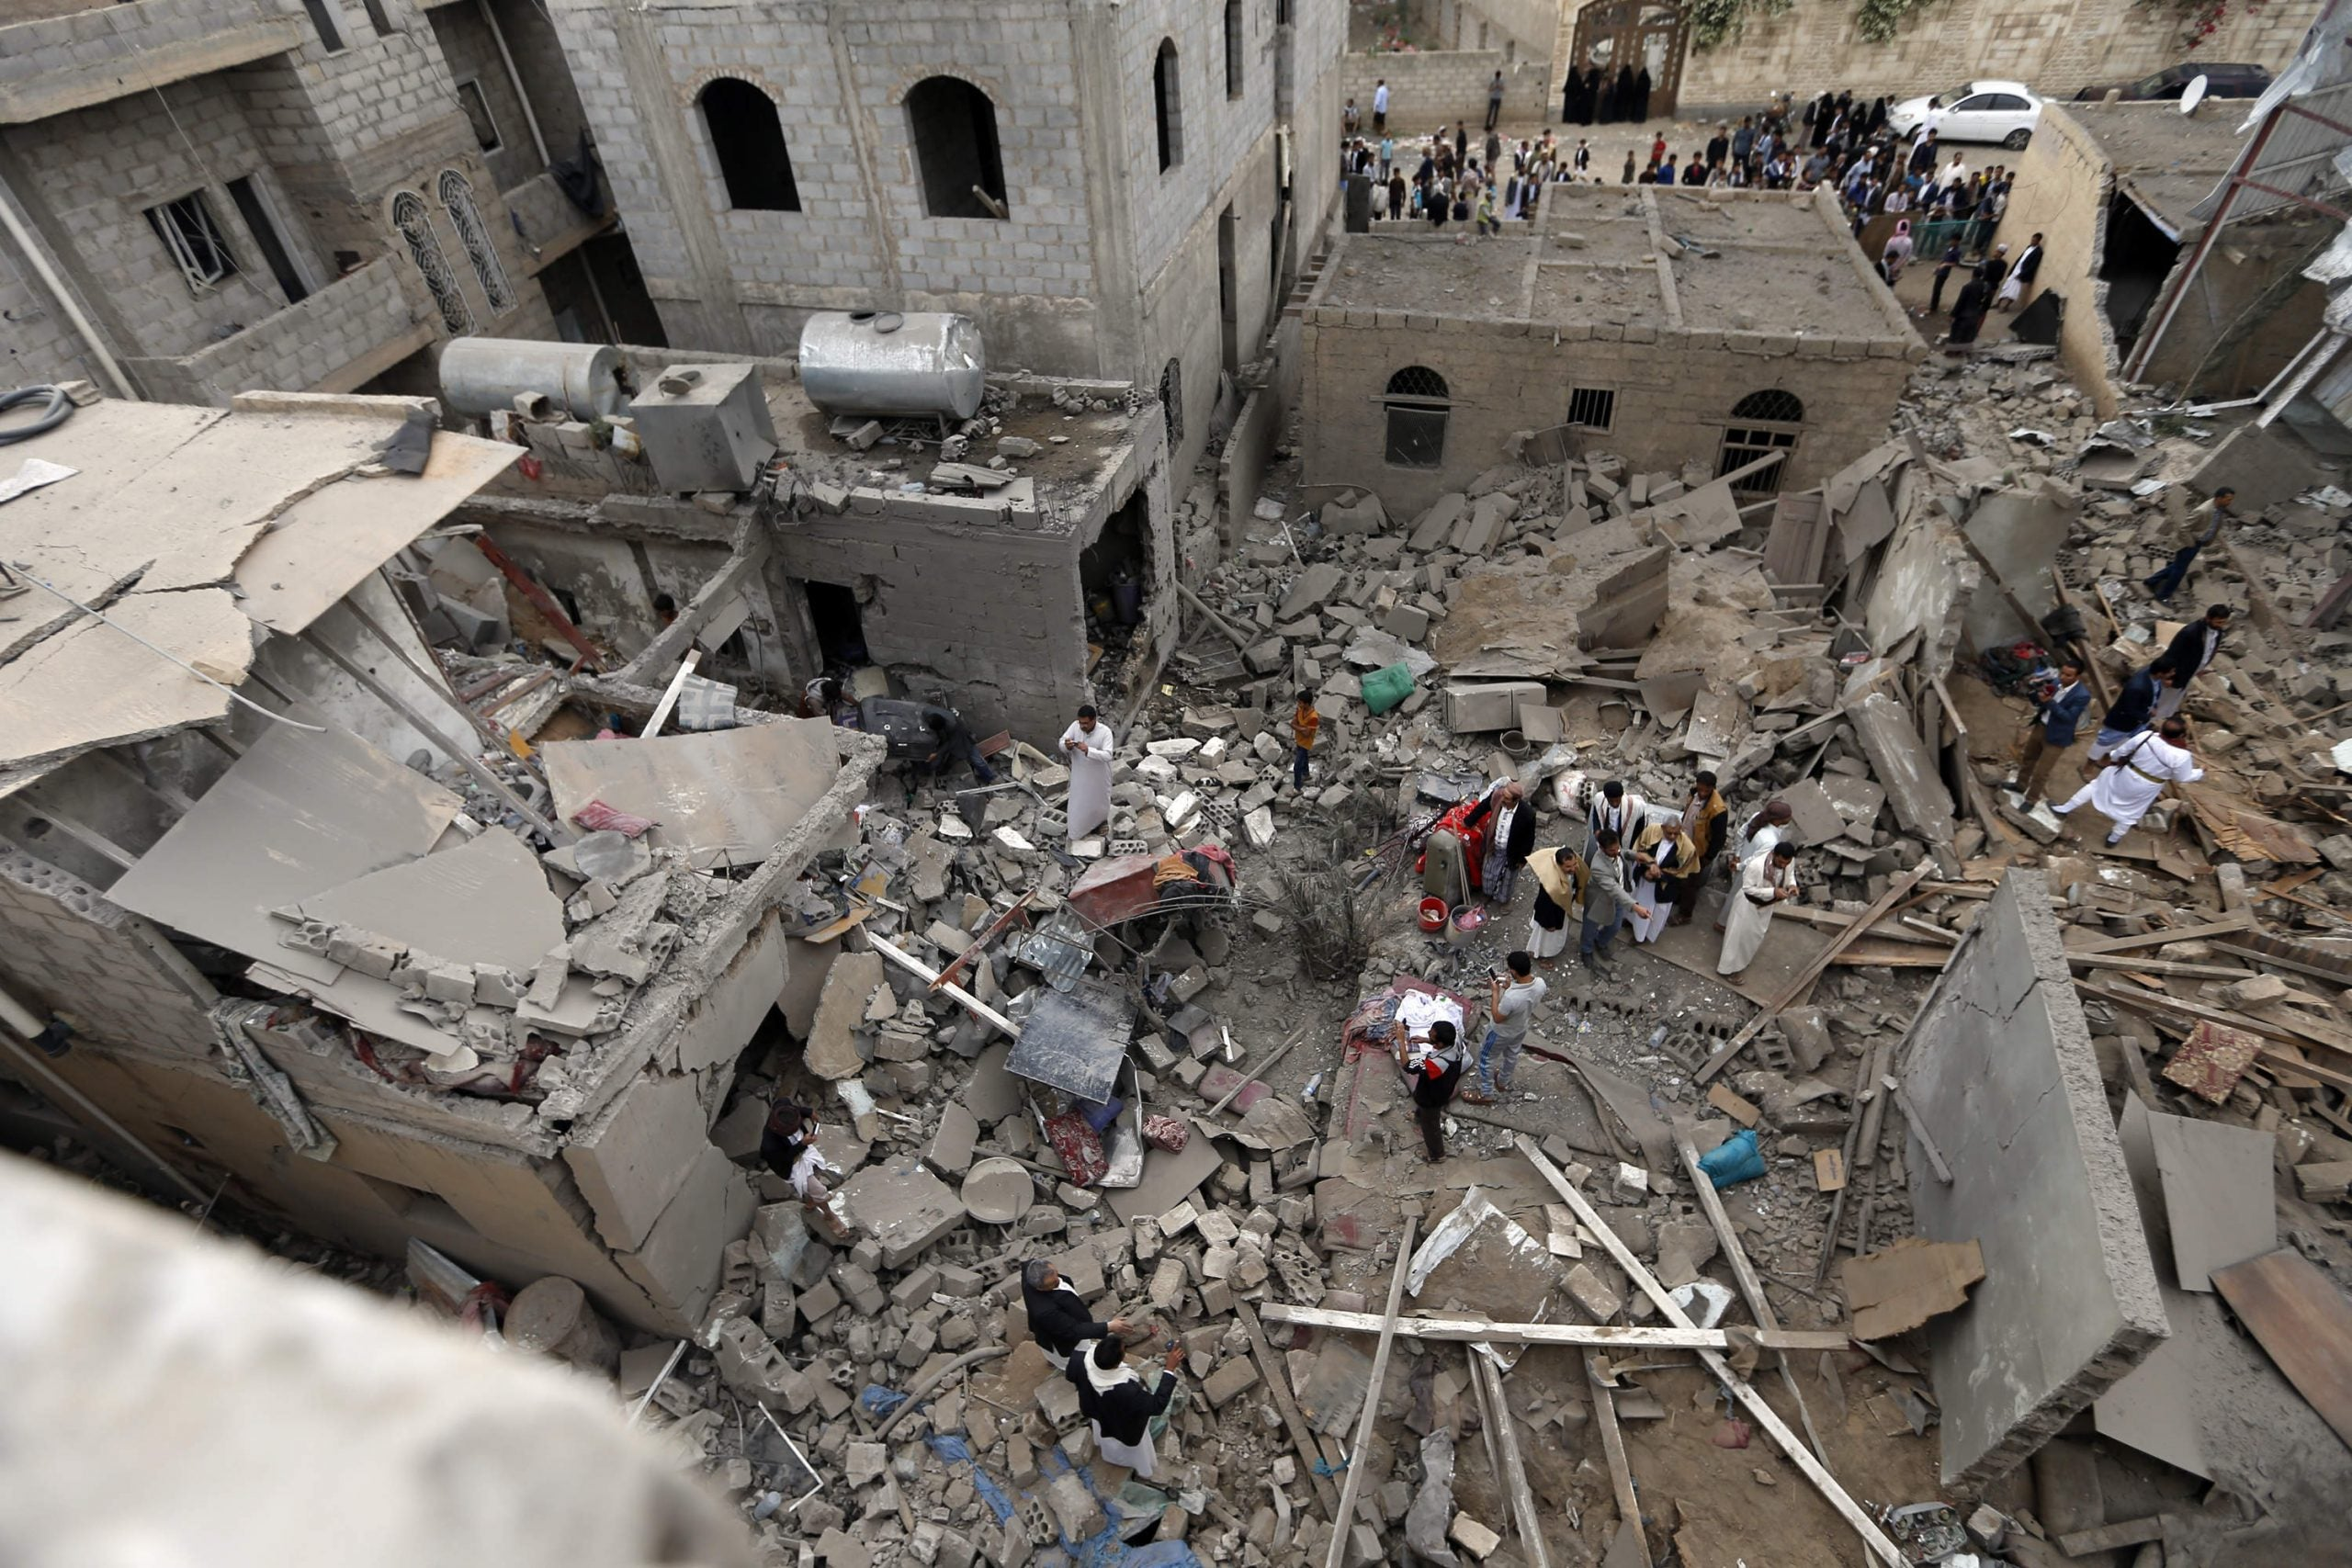 How did the High Court decide that weapon sales to Saudi Arabia are lawful?